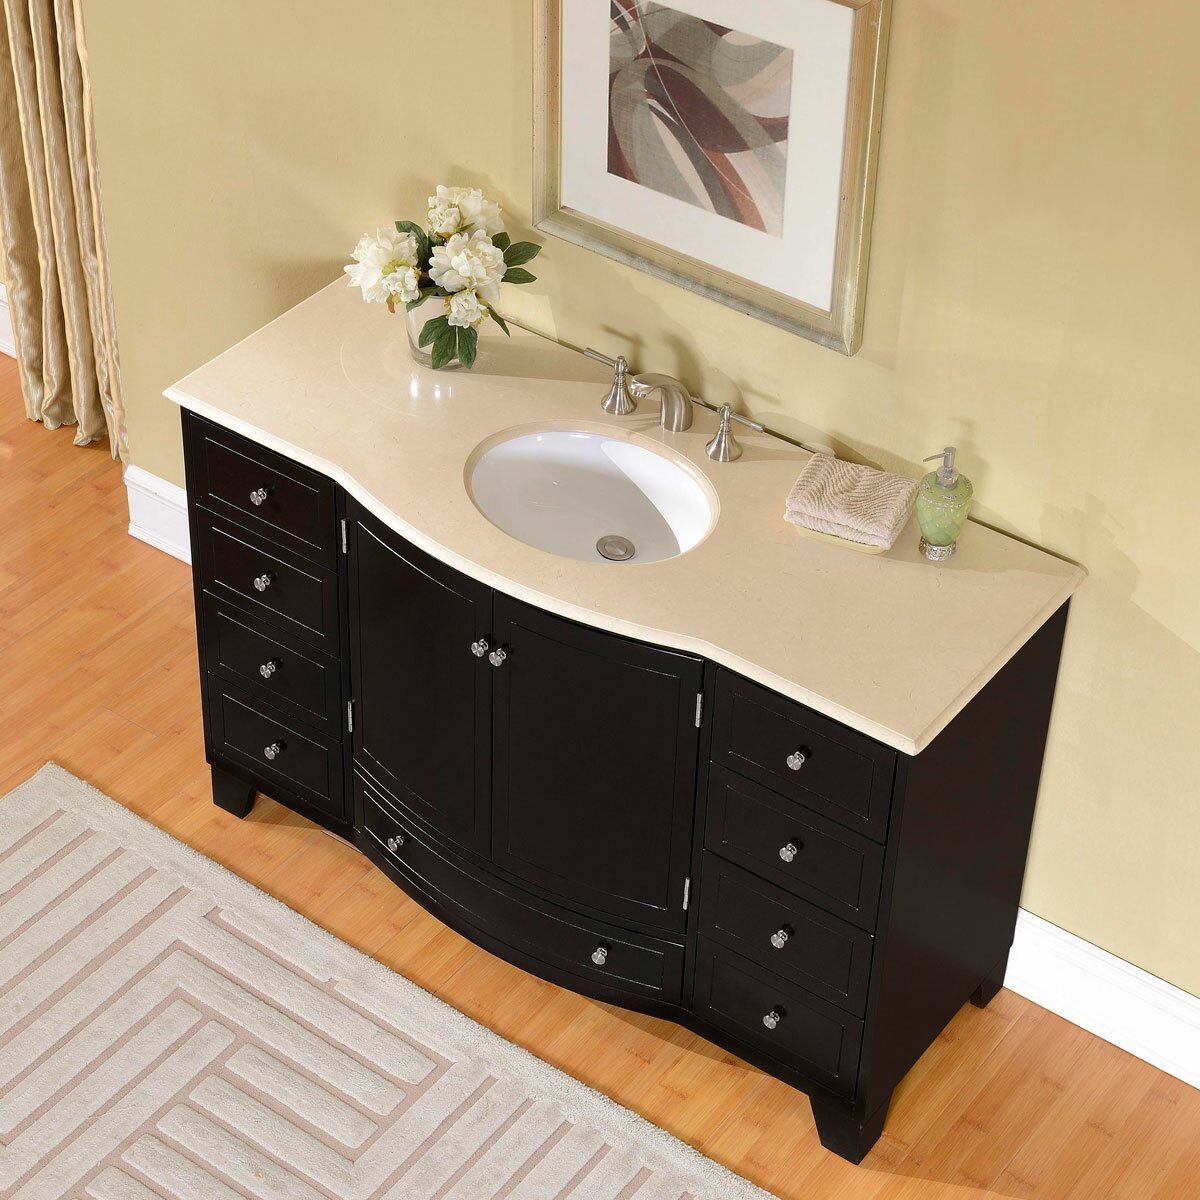 Bathroom single sink cabinets - Silkroad Exclusive 55 Quot Single Sink Cabinet Bathroom Vanity Set